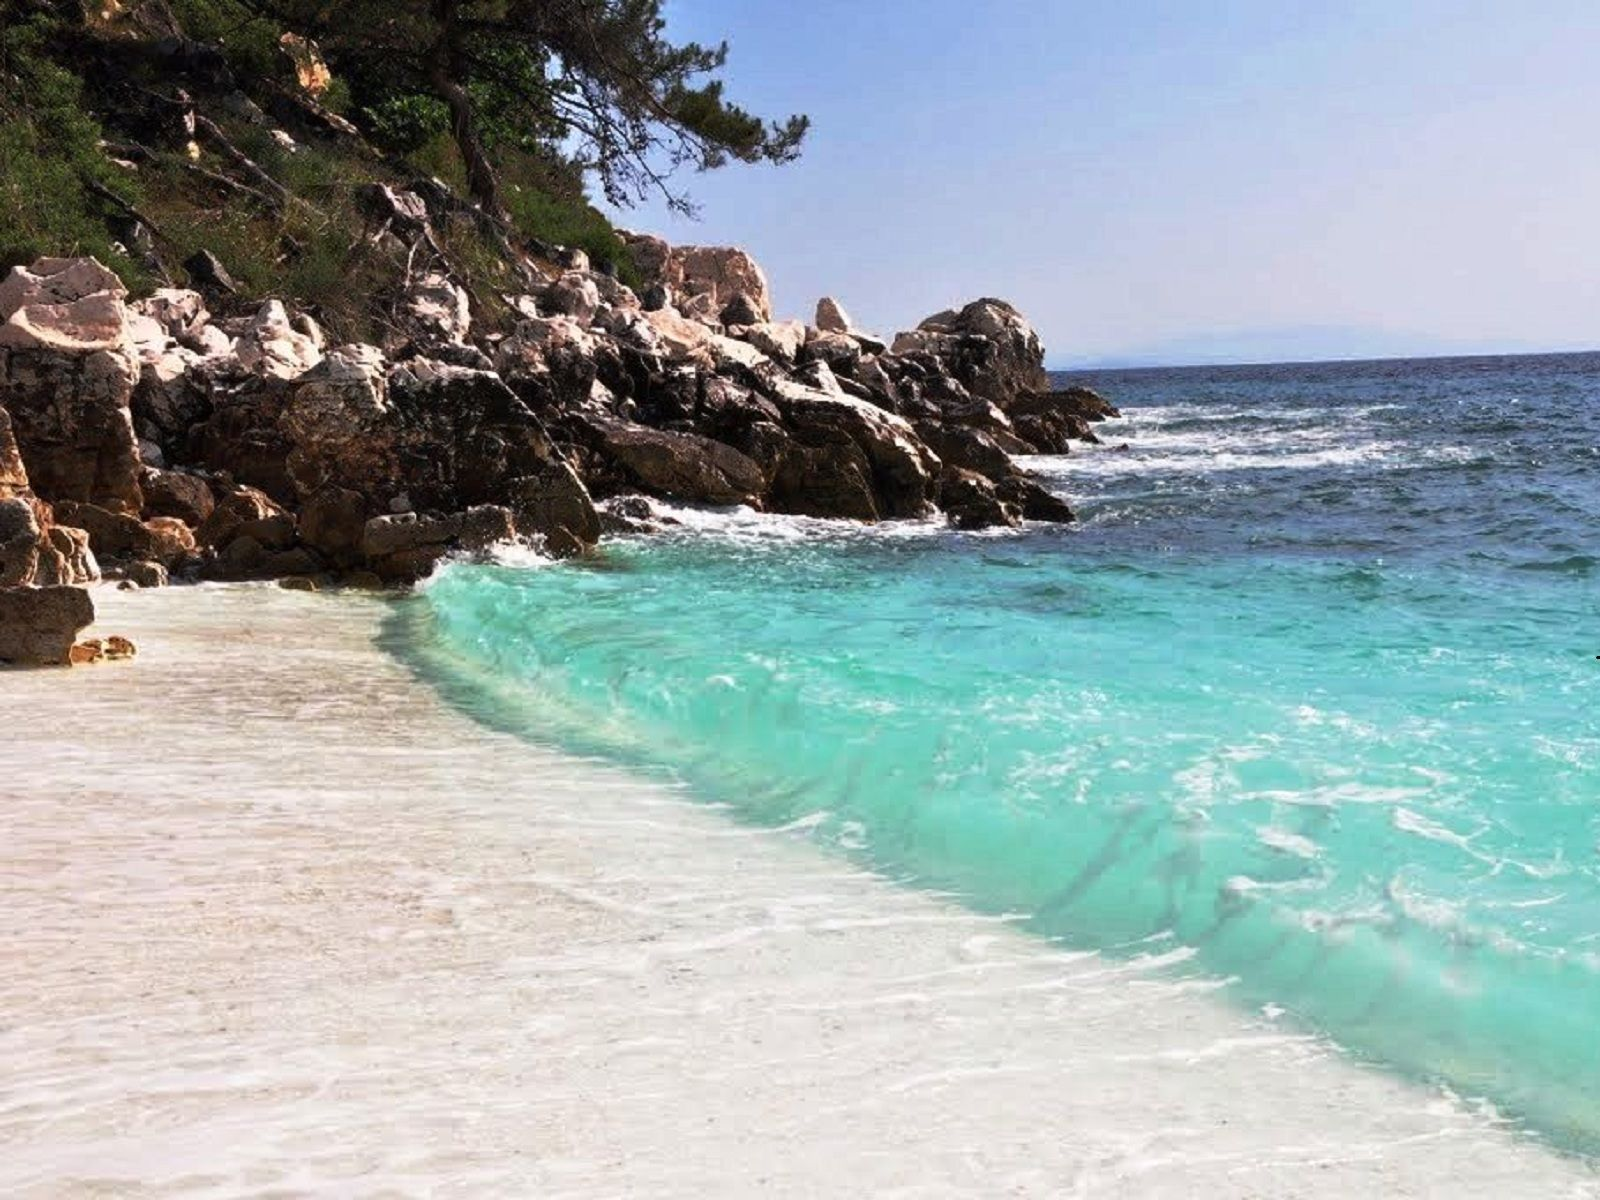 Greek Island Beaches: Blue Ocean For More Pictures Visit Http://a-sea-of-luxury